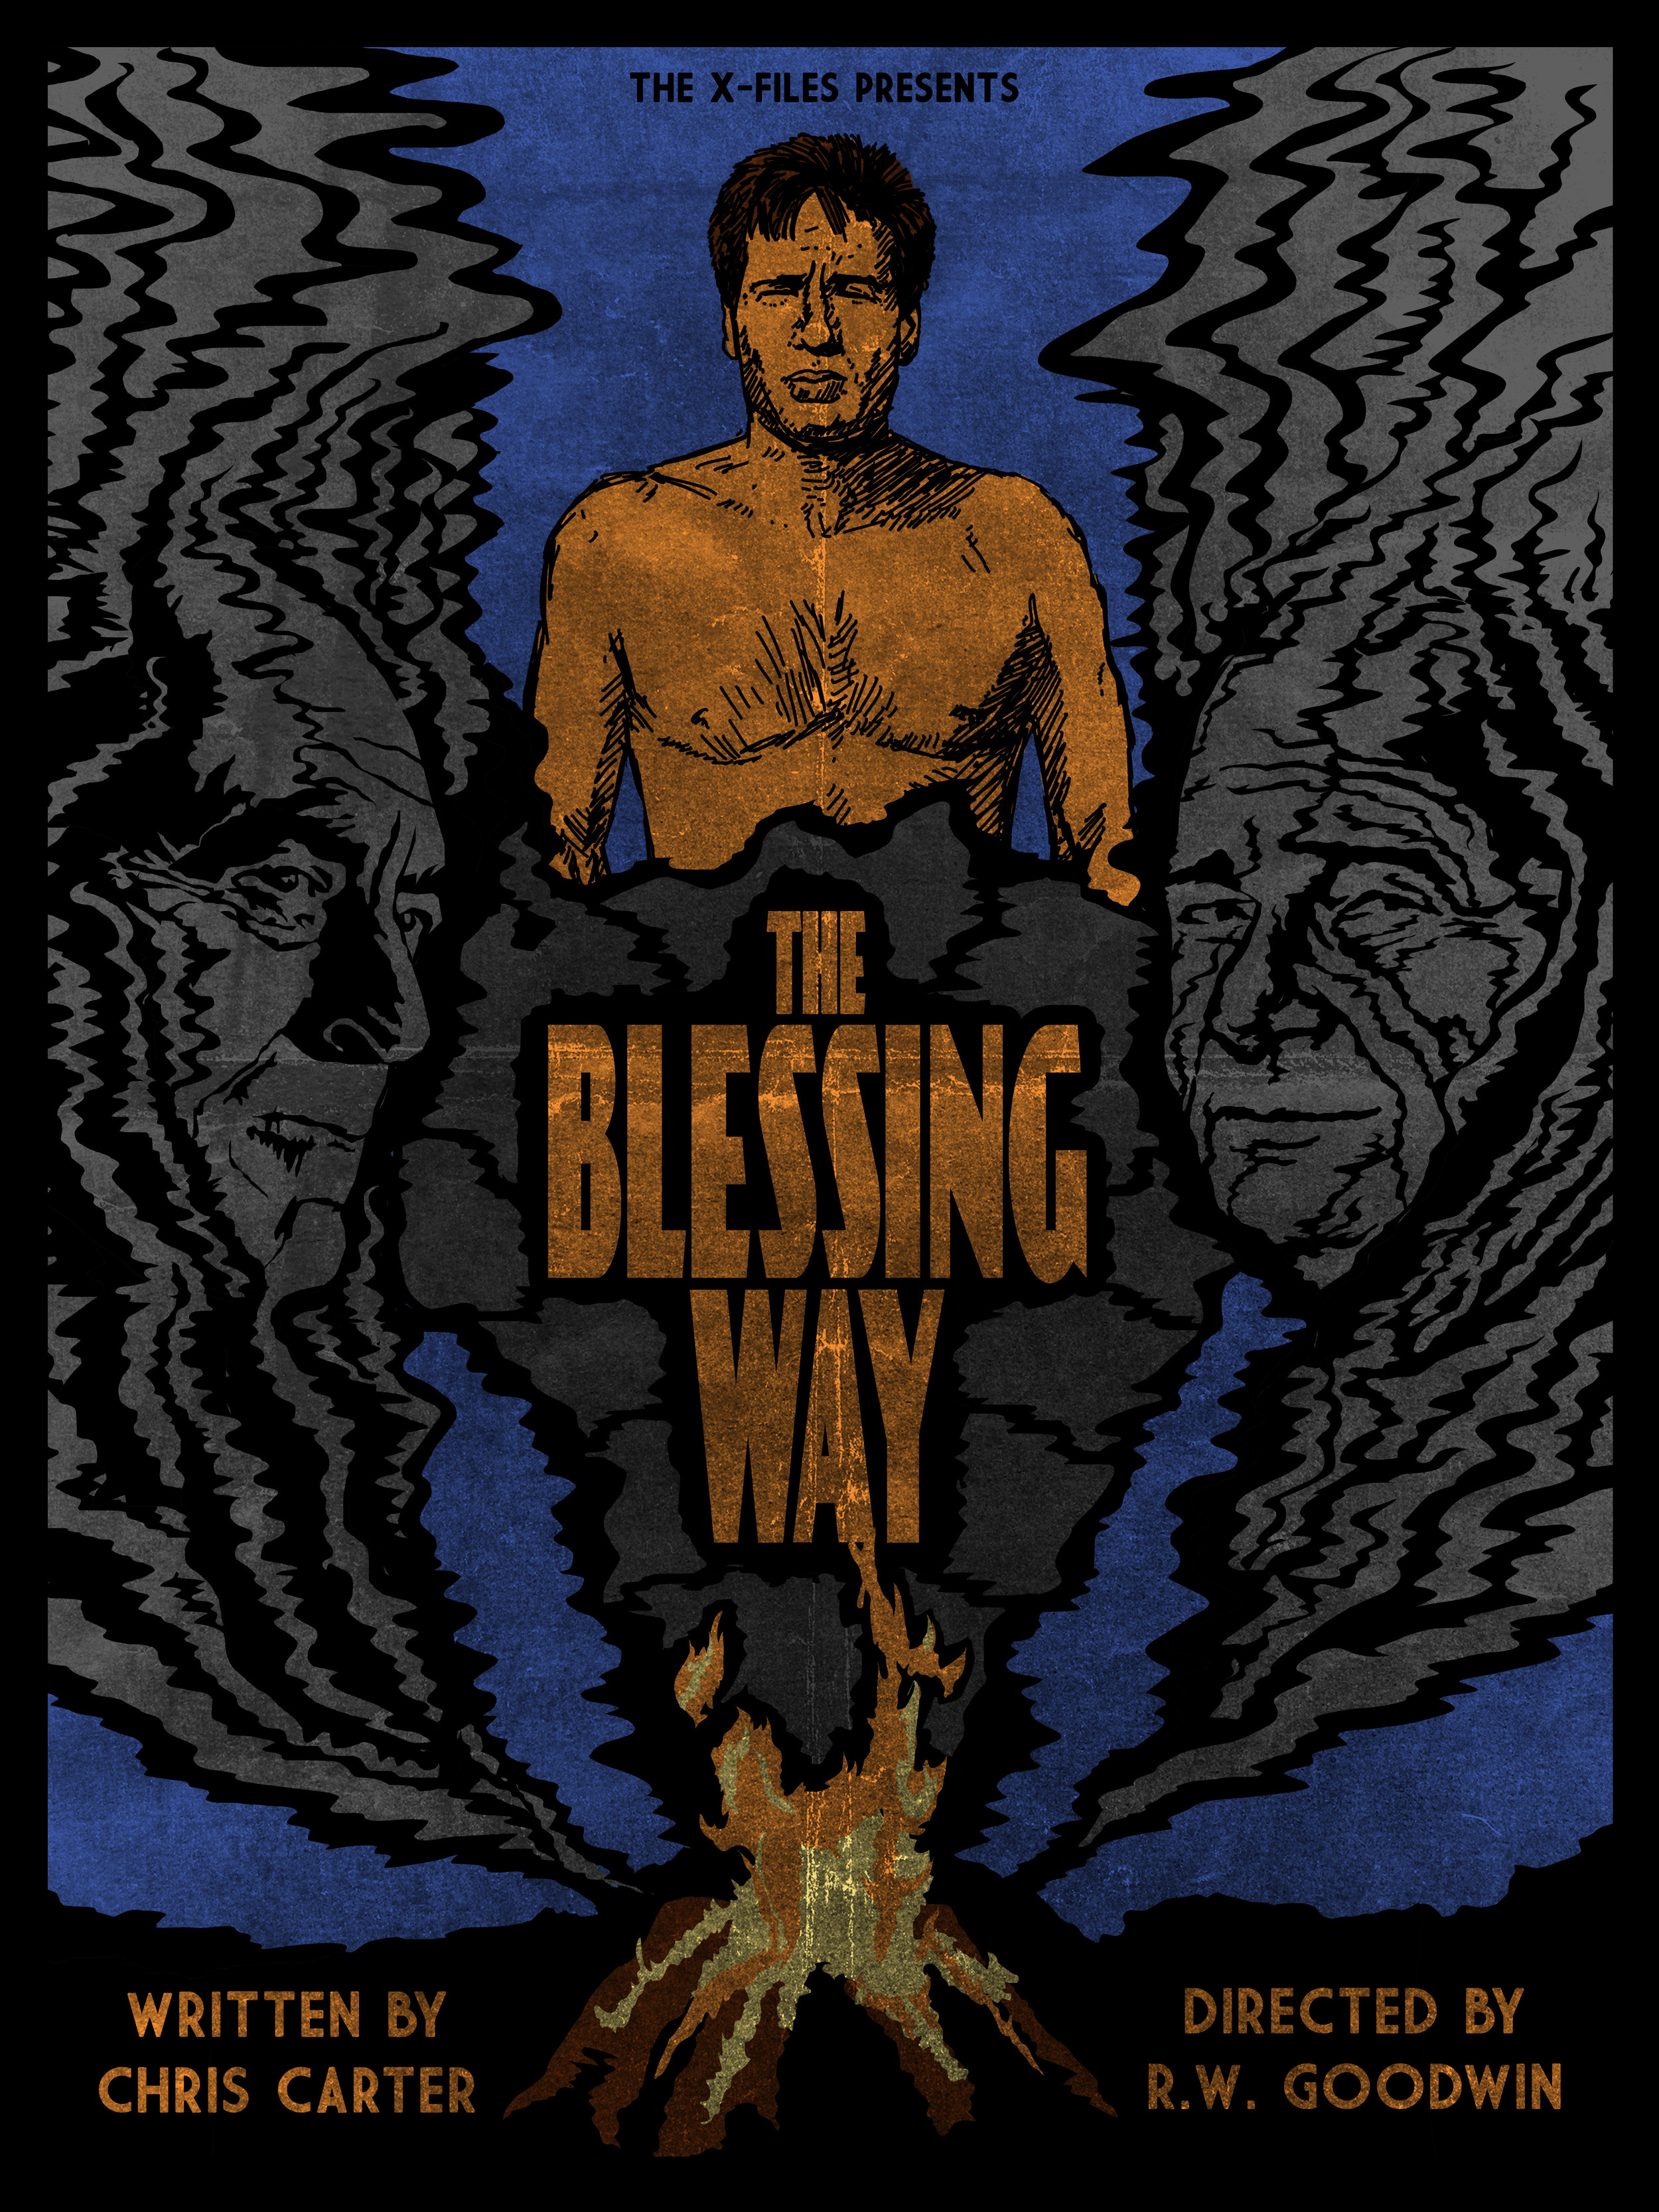 The Blessing Way